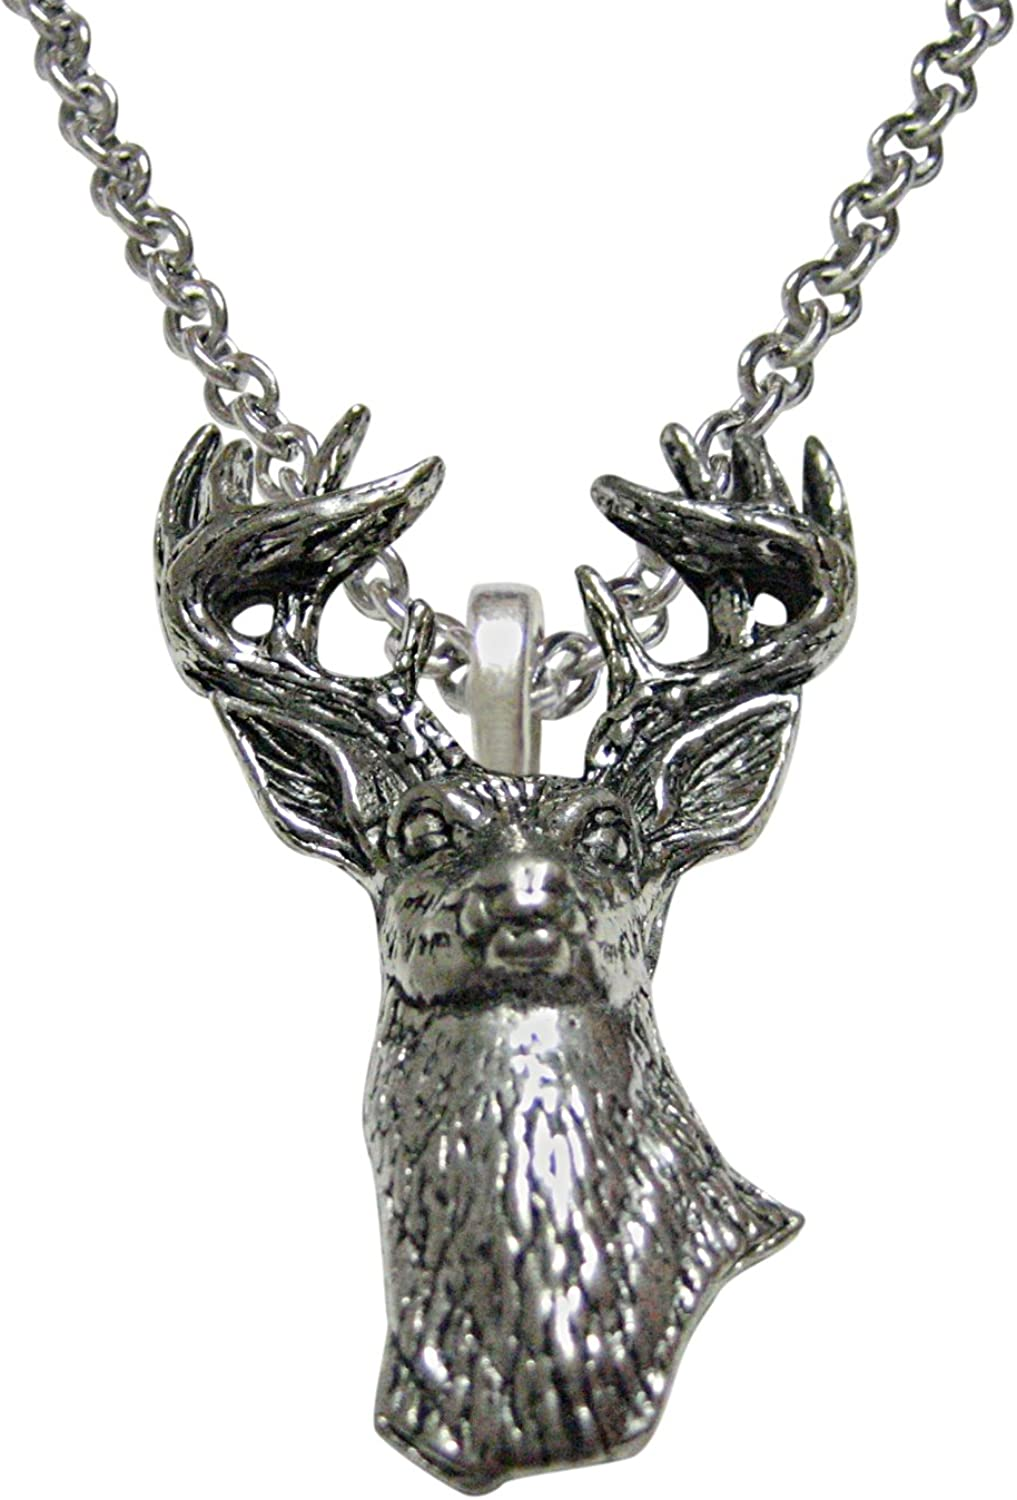 Kiola Designs White Tailed Stag Deer Head Pendant Necklace